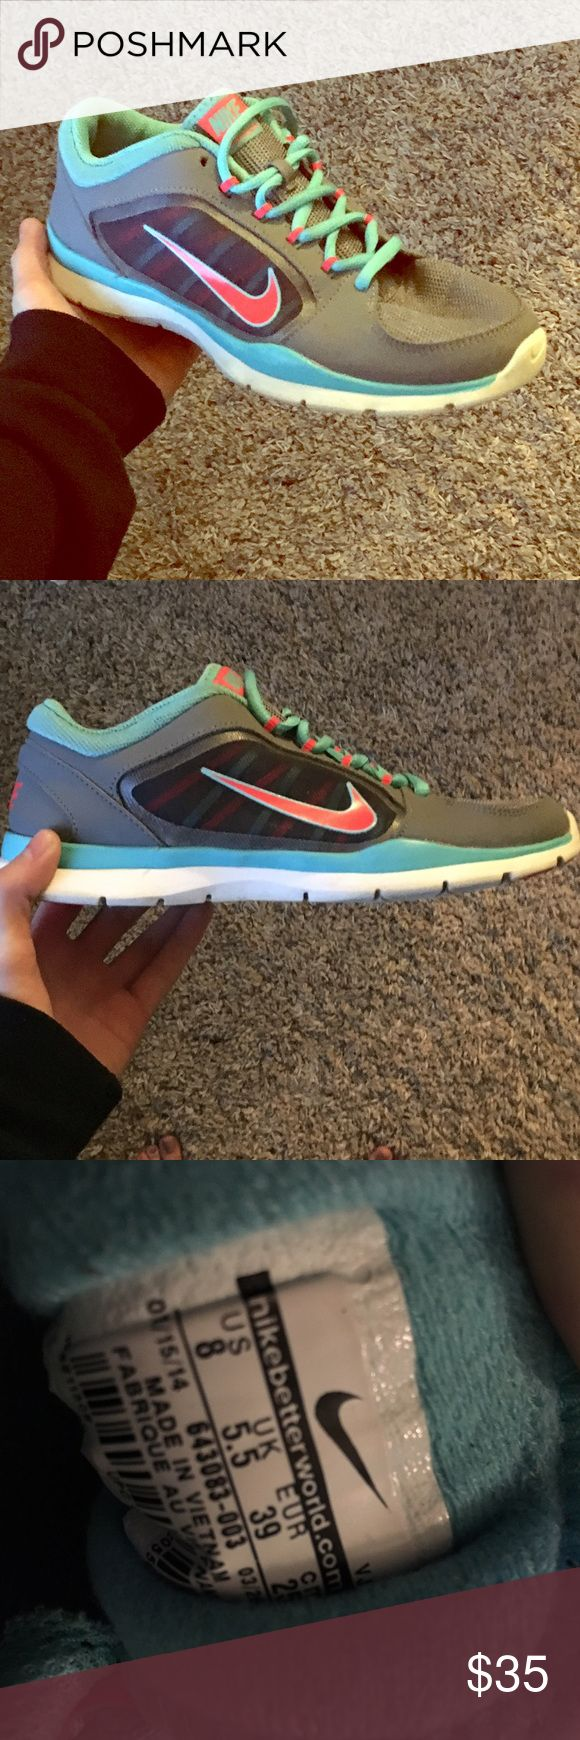 Nike Training shoes Size 8 in woman's, great condition Nike Shoes Athletic Shoes